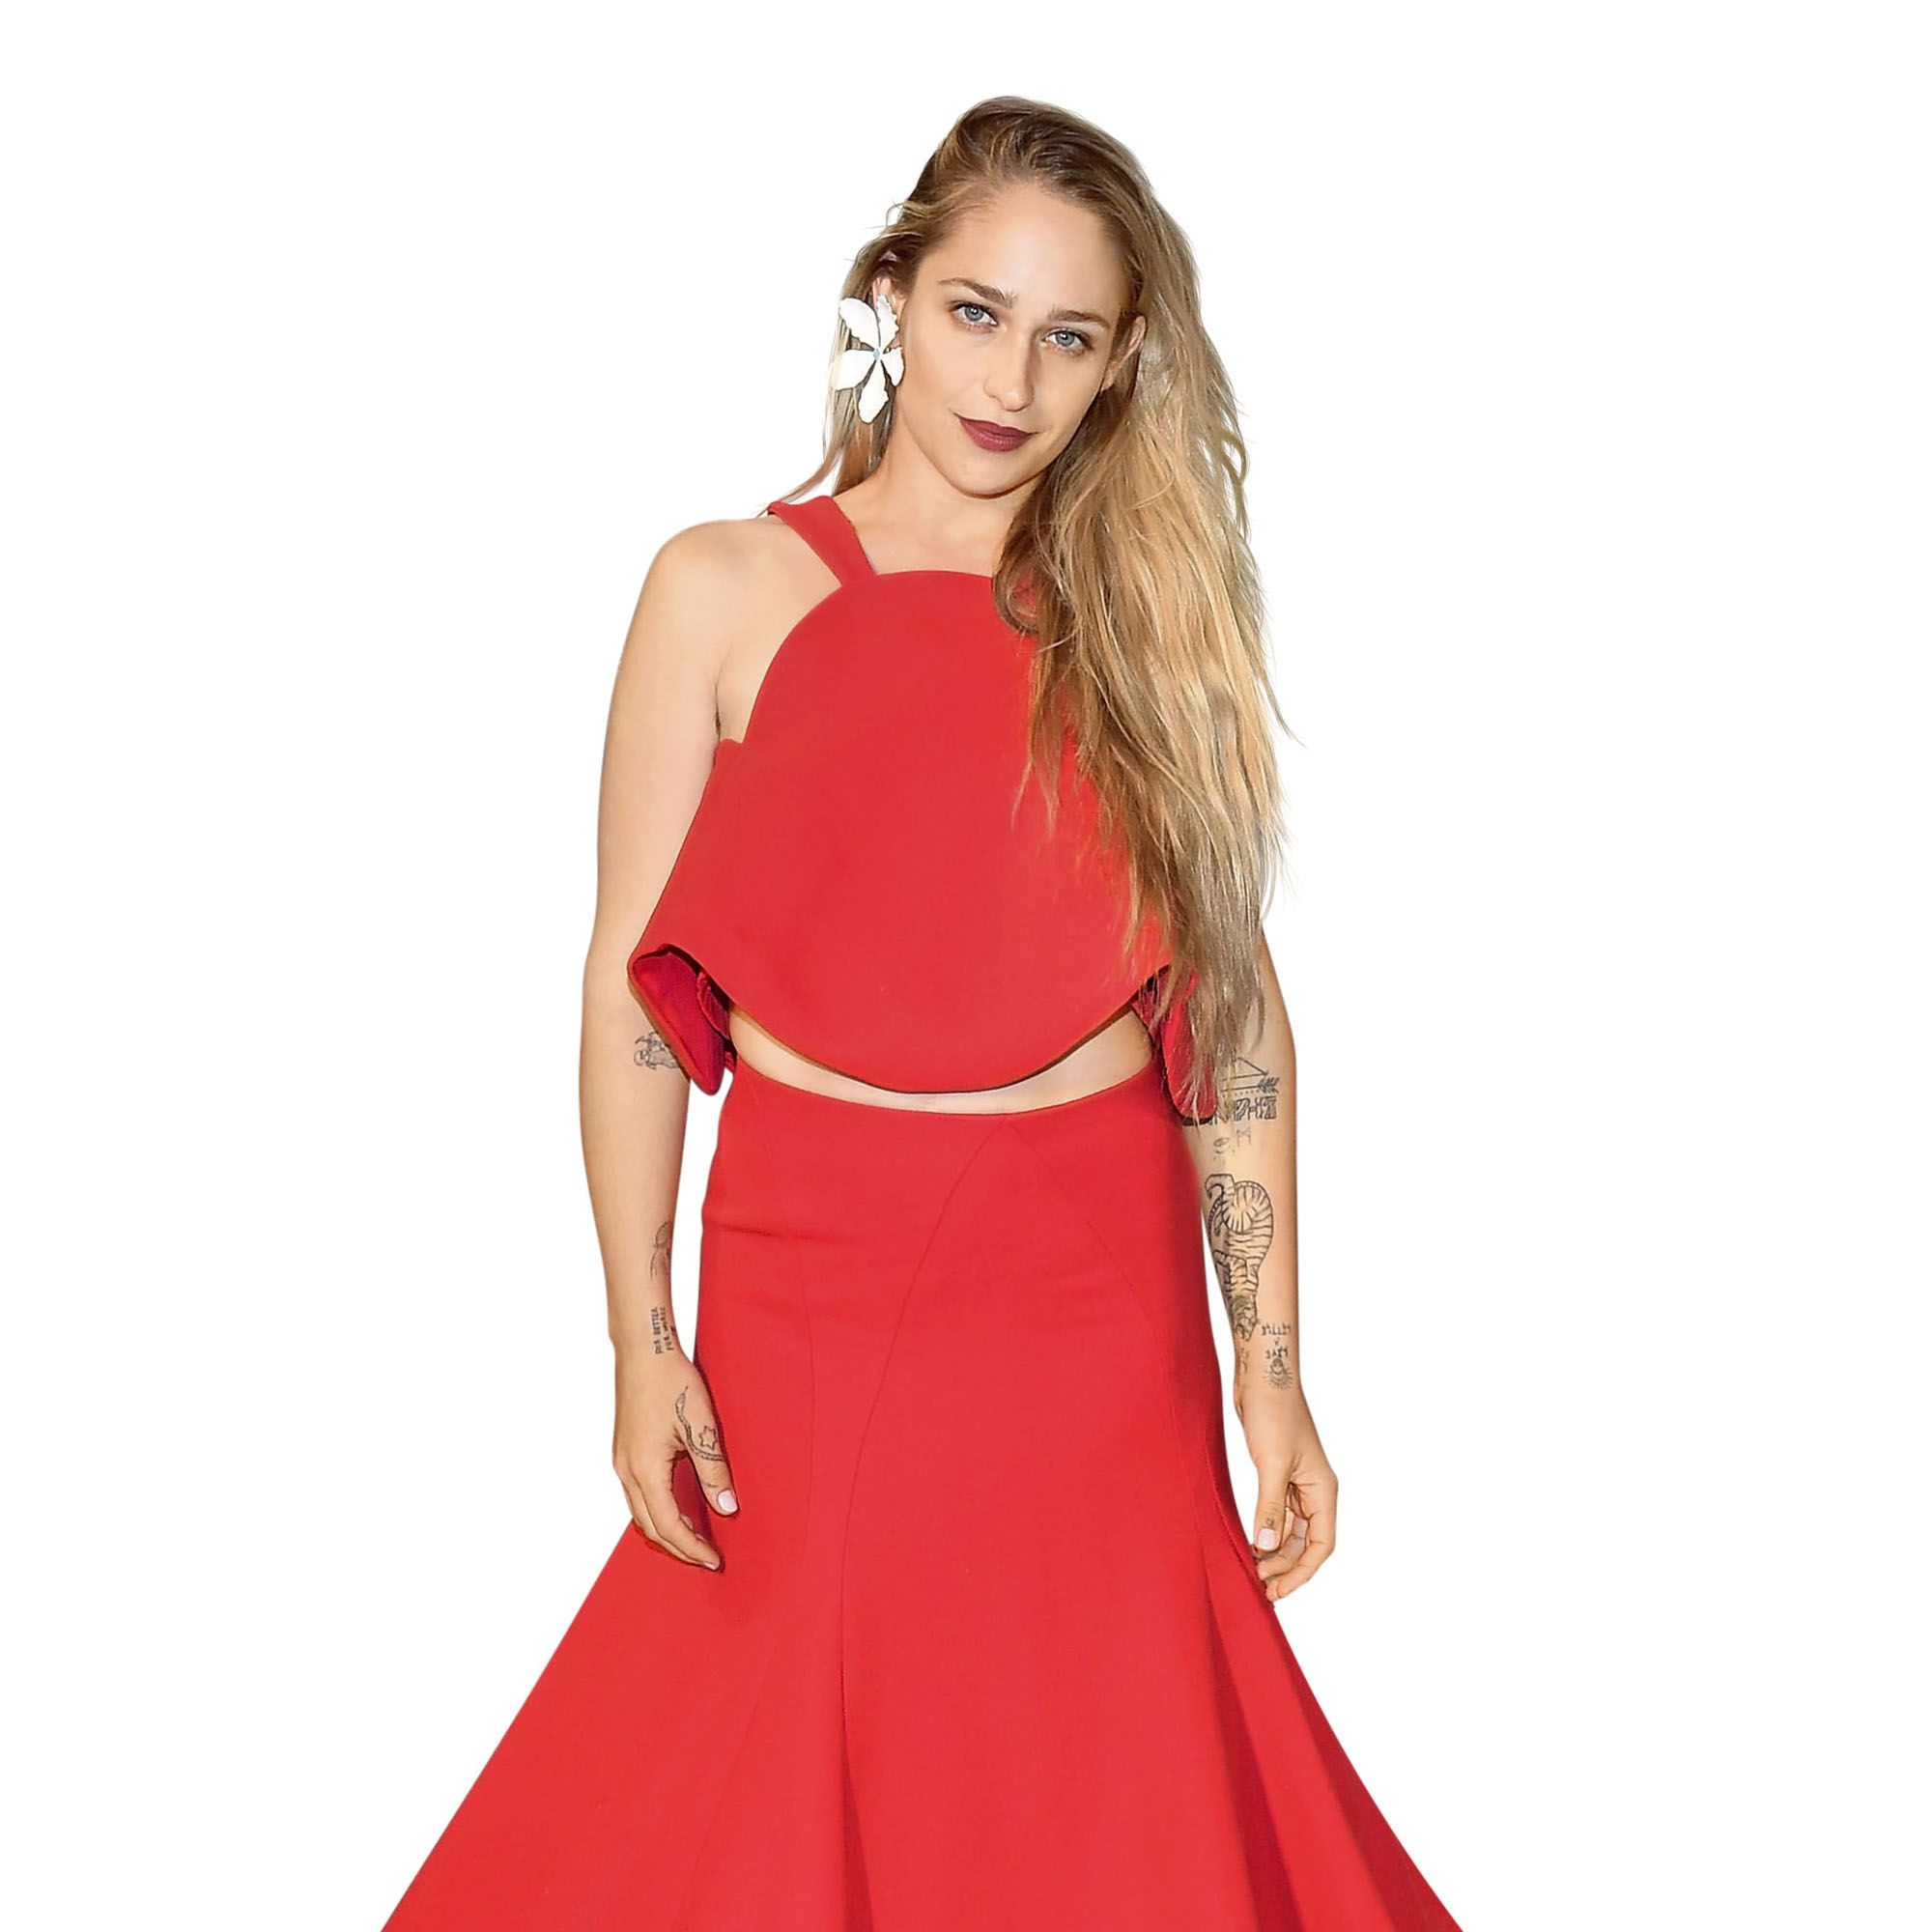 <p>Jemima has such authenticity and humor. Her joie de vivre in style and spirit is contagious. </p><p><em>Jemima Kirke in Rosie Assoulin.</em><br></p>